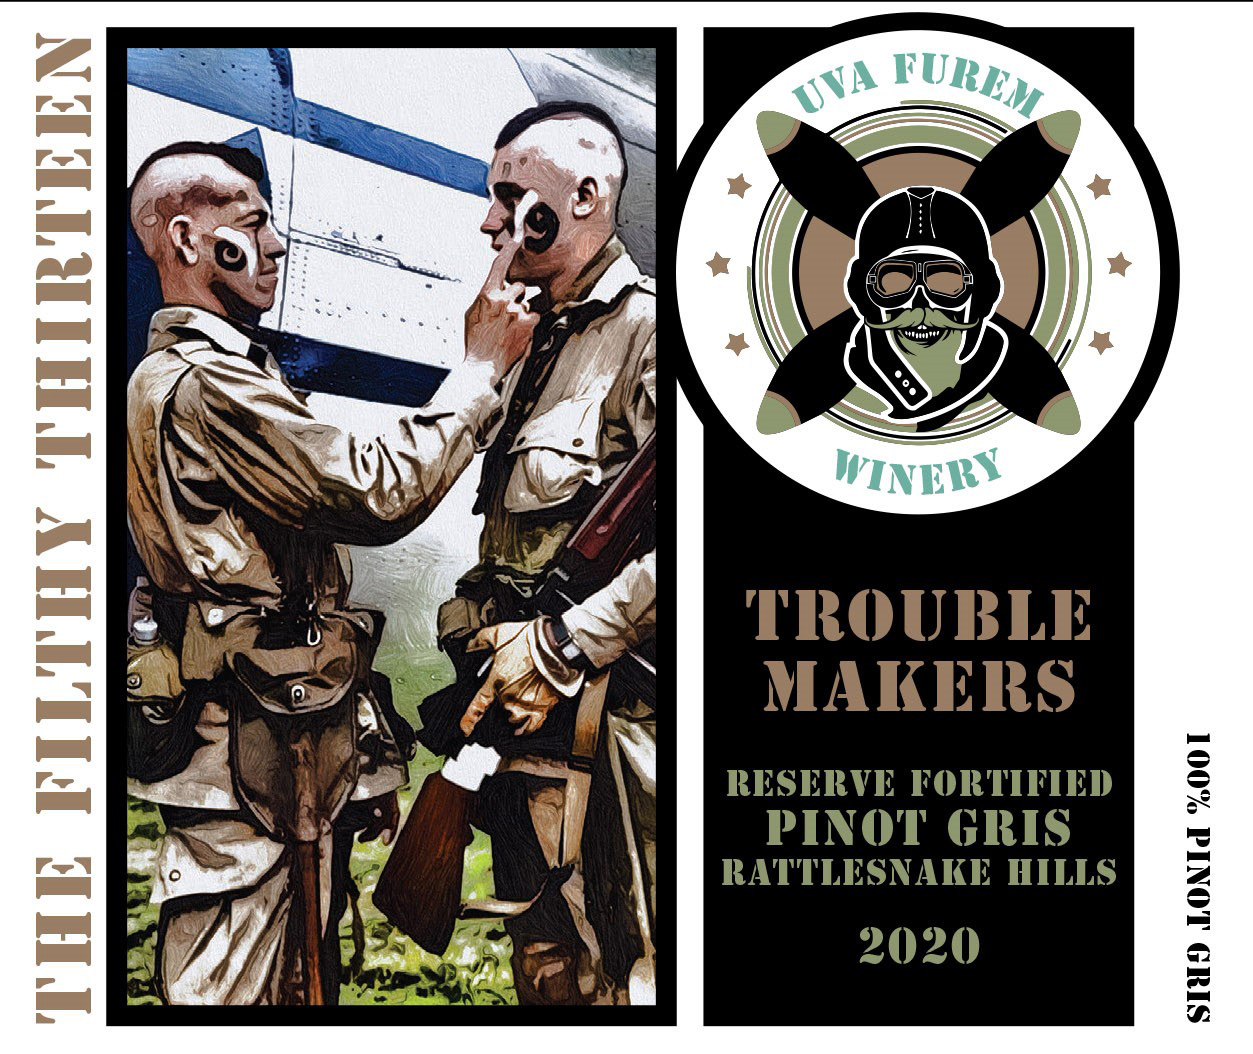 Product Image for 2020 'Troublemakers' fortified Pinot Gris